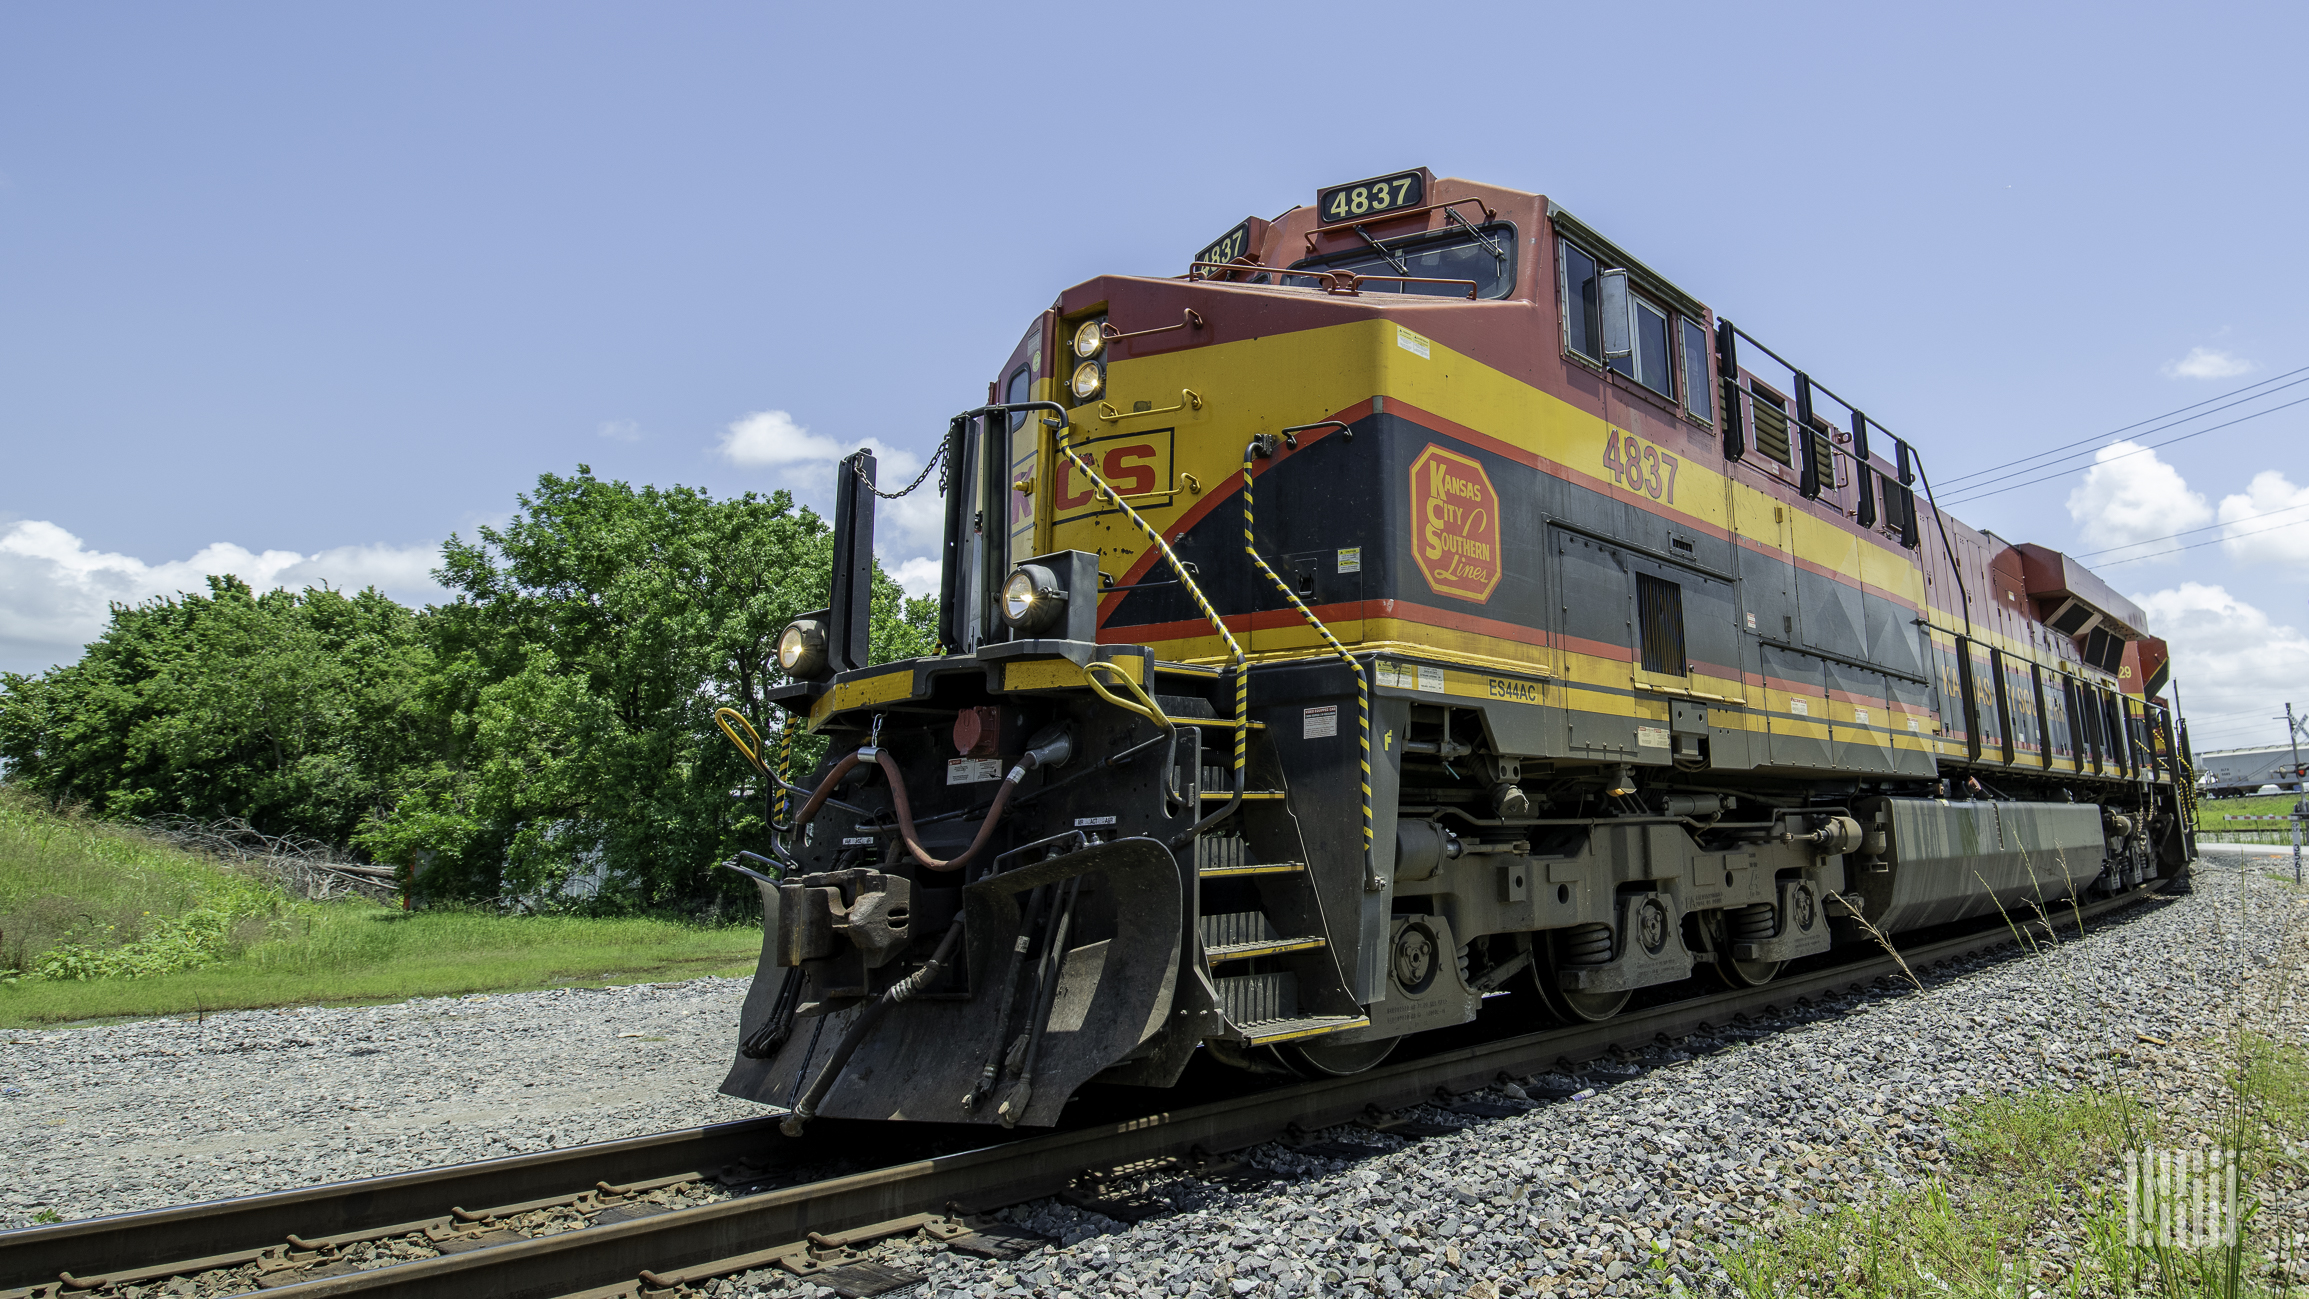 A photograph of a Kansas City Southern locomotive rolling down a train track.